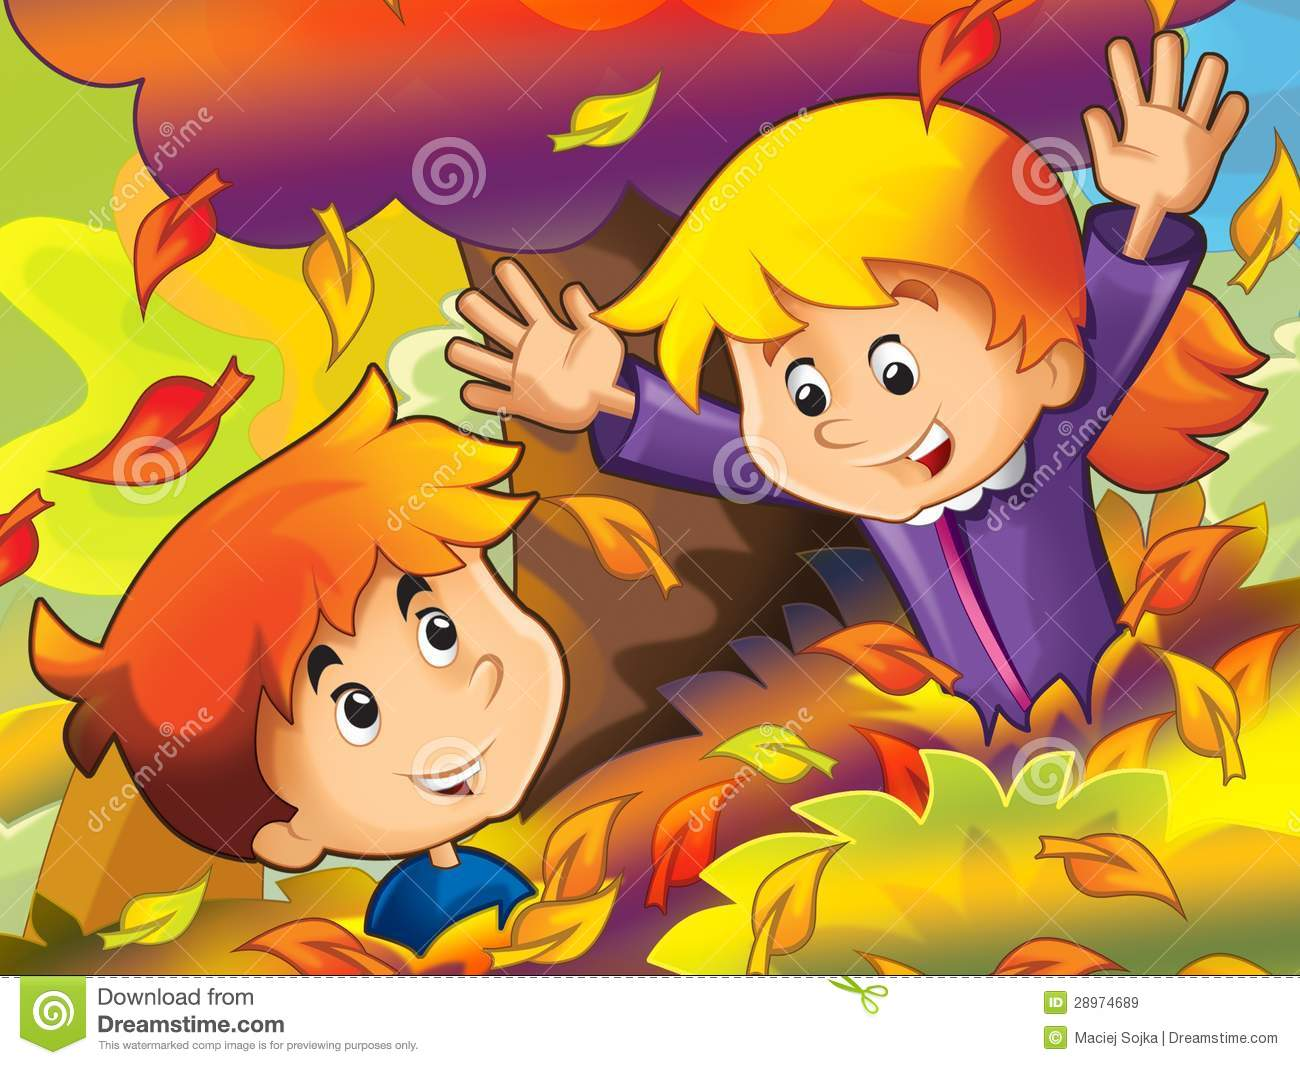 Falling Leaves Wallpaper Free Download Cartoon Kids Playing In Park Autumn Stock Illustration